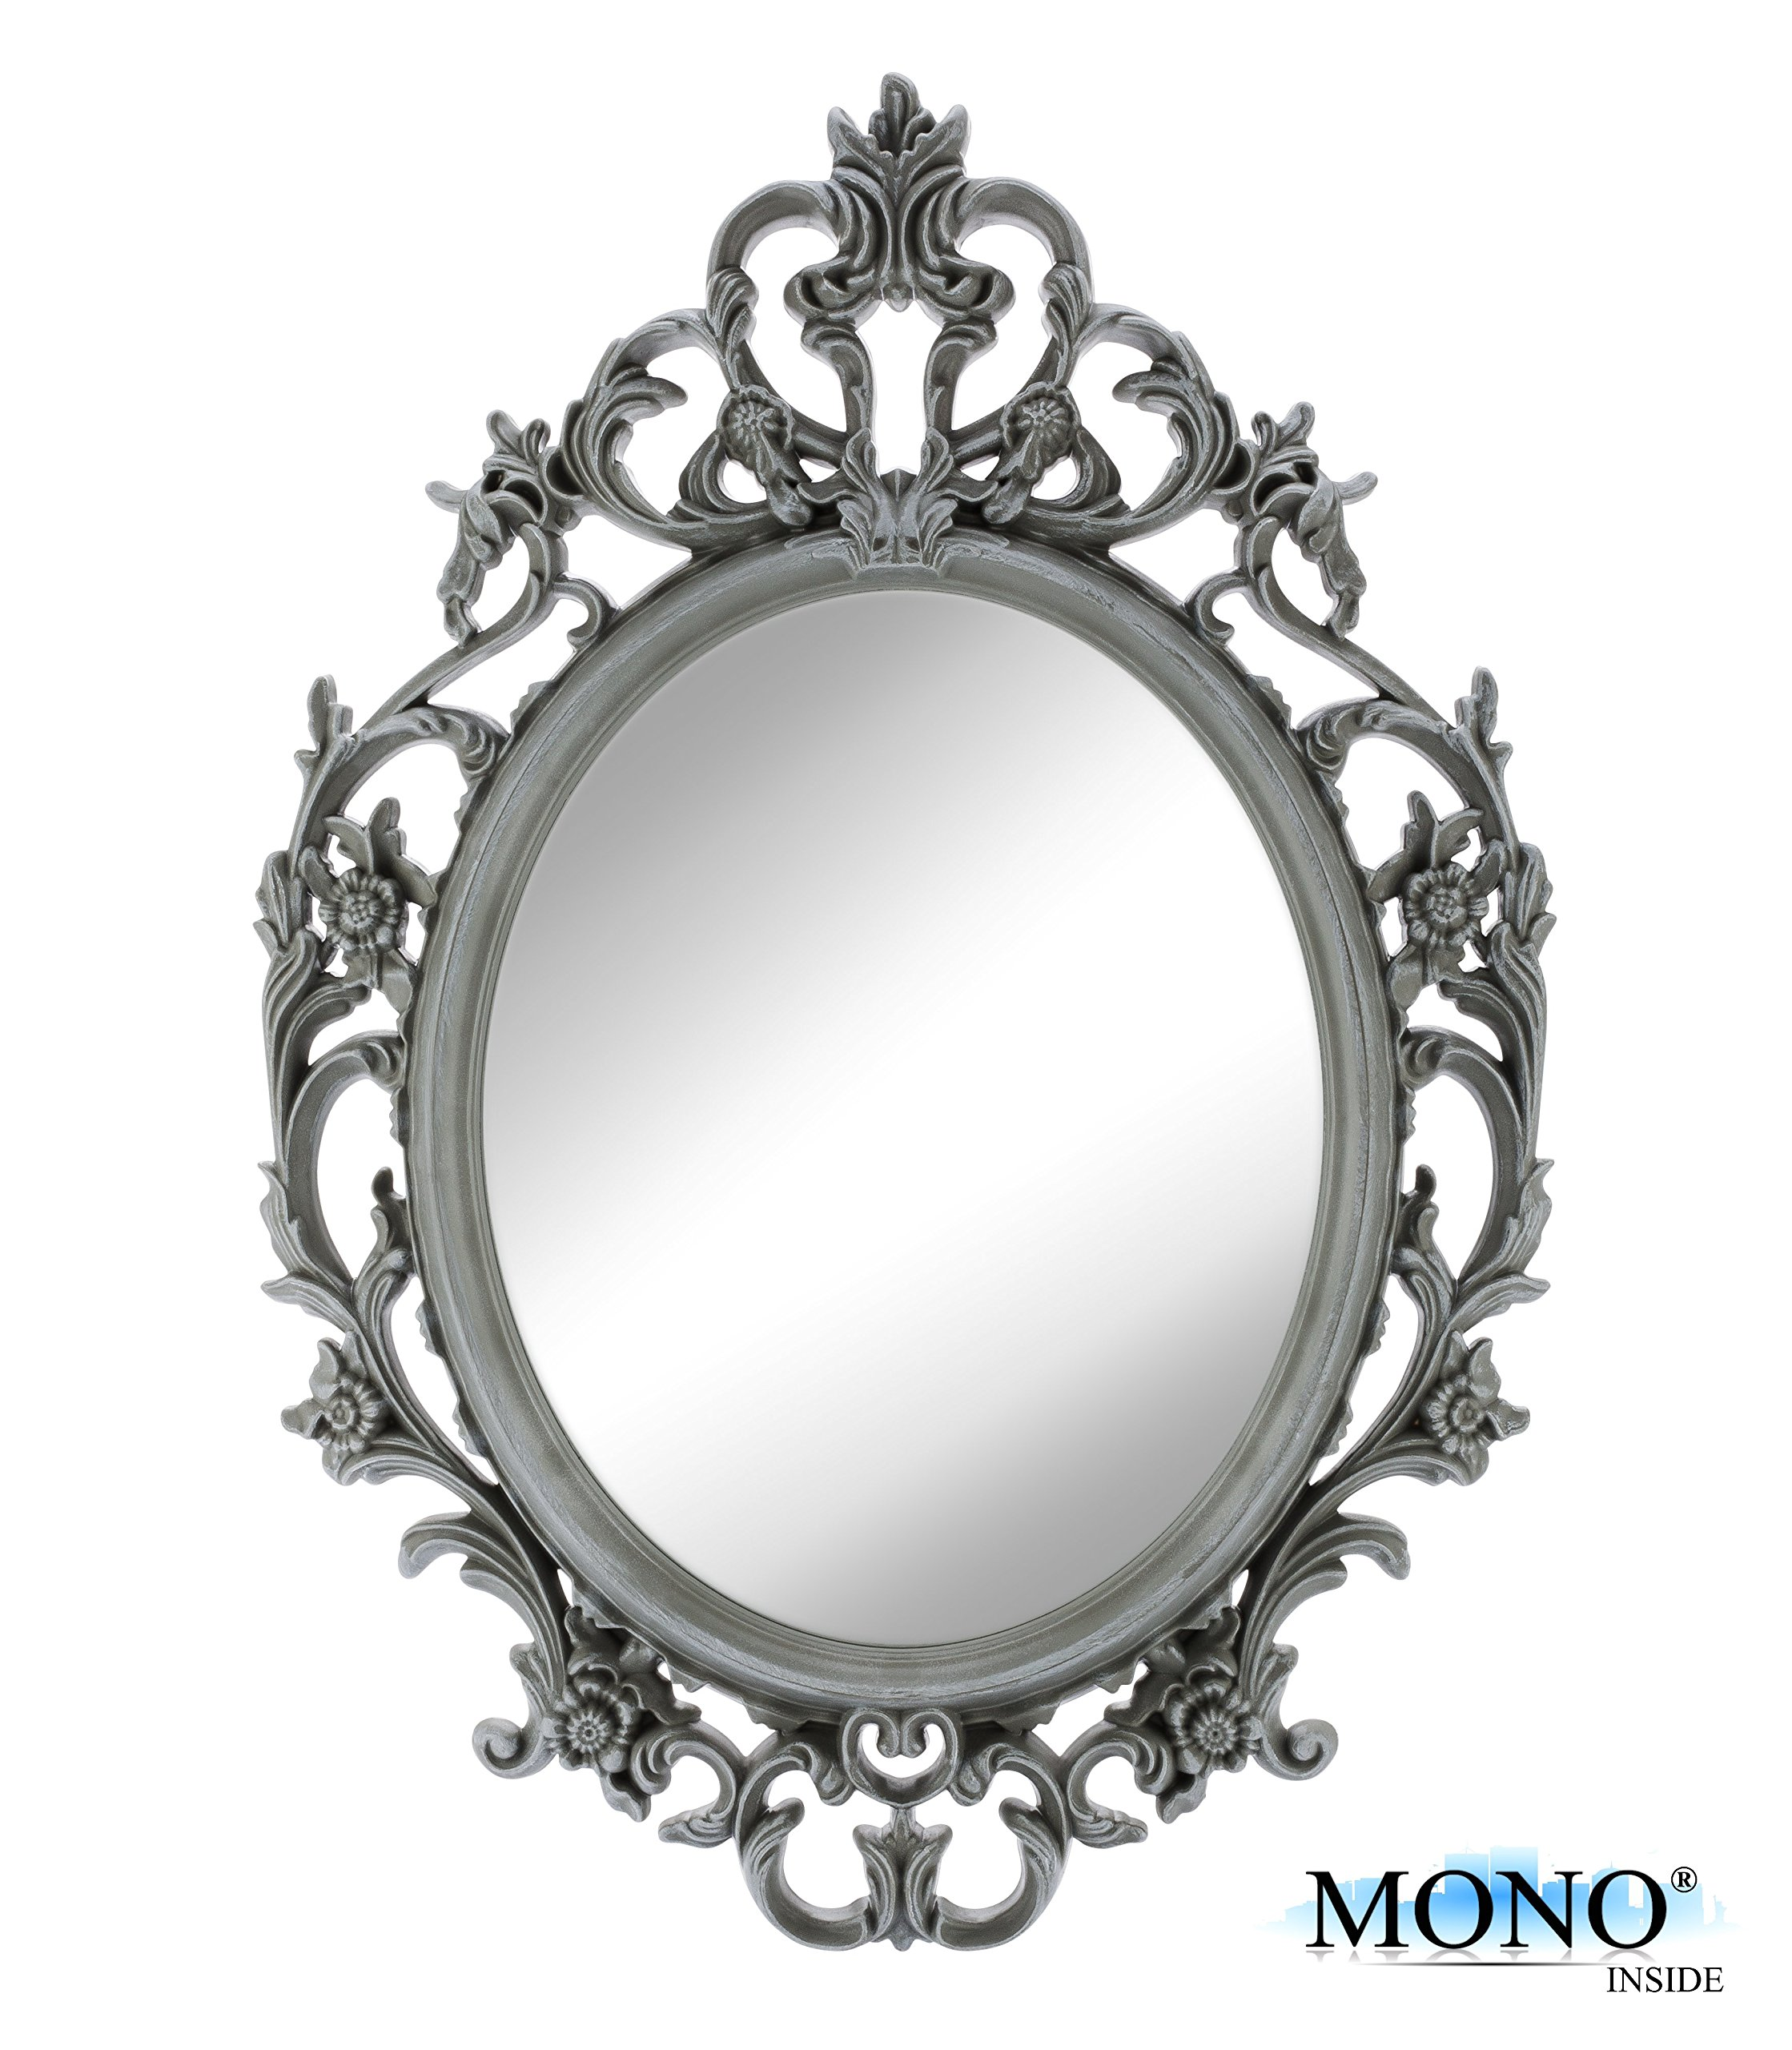 Galleon Monoinside Small Decorative Framed Oval Wall Mounted Mirror Vintage Amp Classic Baroque